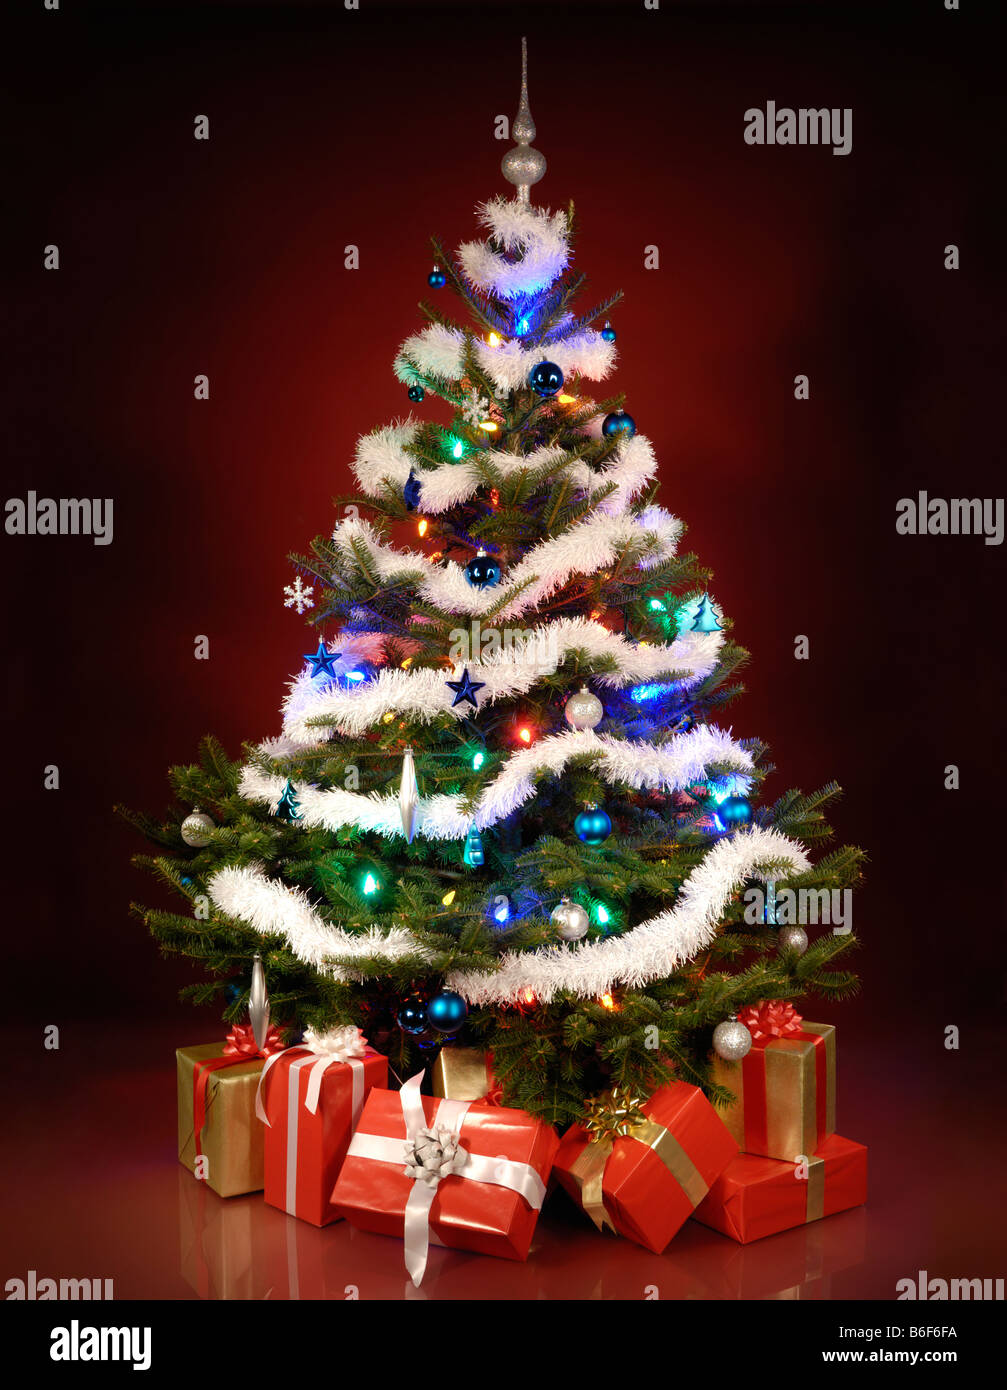 Christmas tree with presents and lights -  Shining Christmas Tree With Gifts Under It Stock Photo